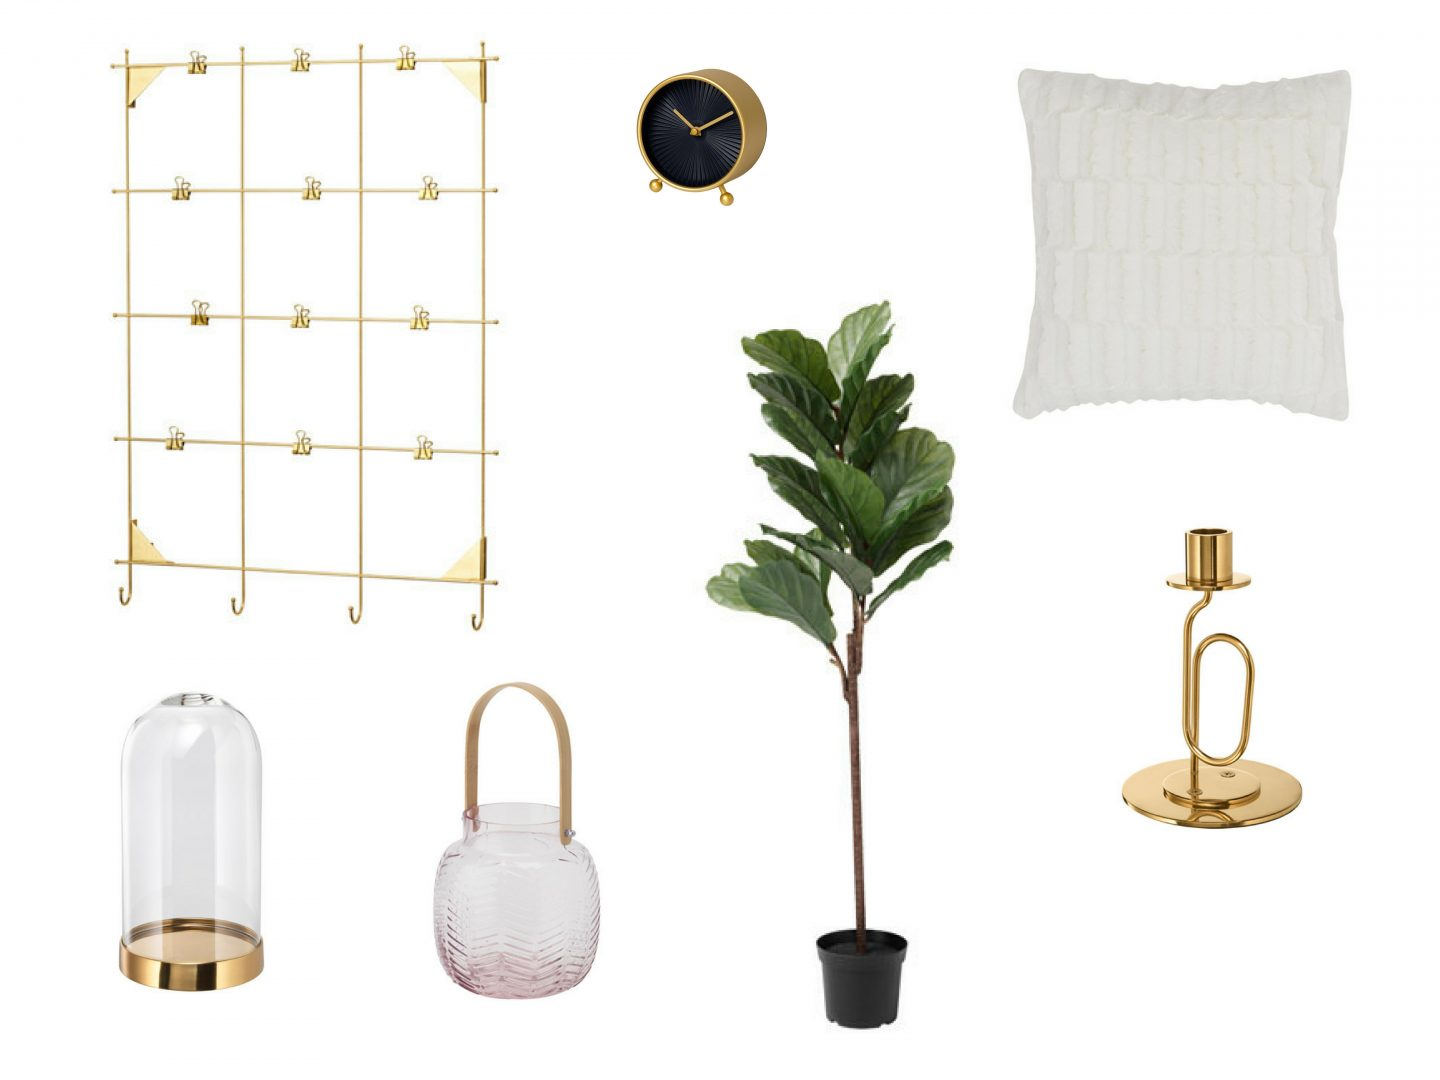 IKEA homeware edit – on my shopping list